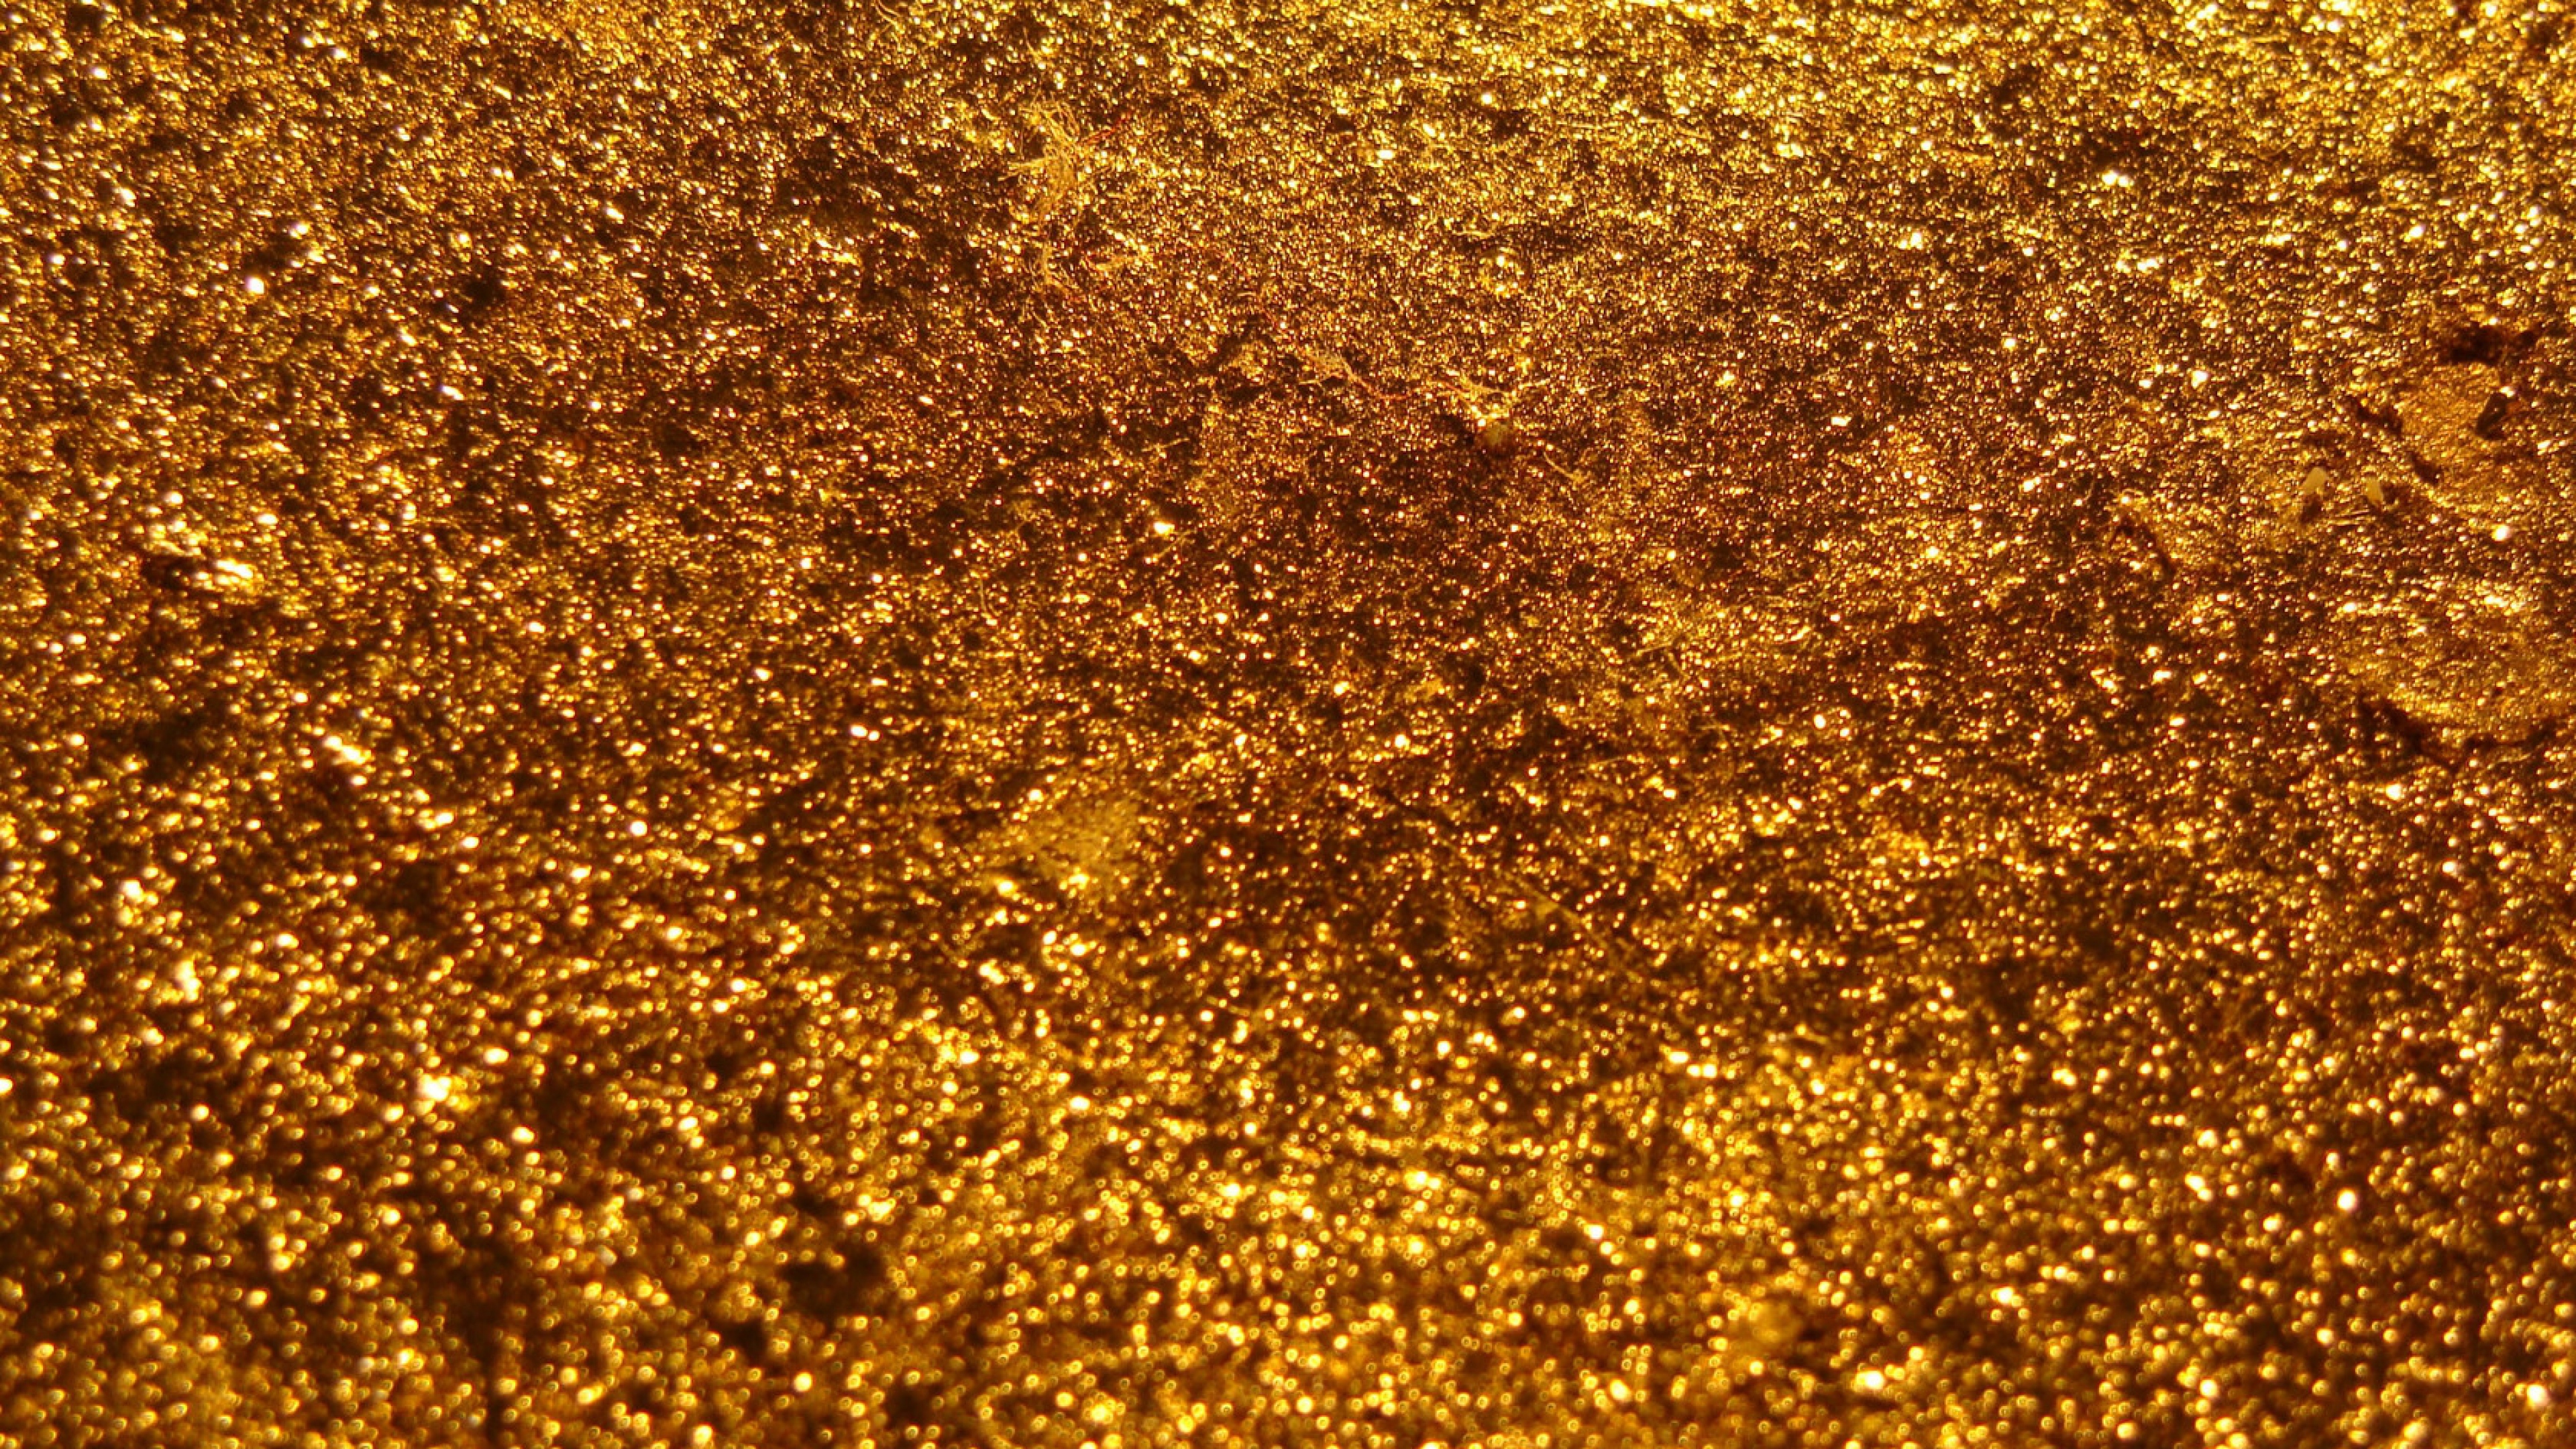 gold texture widescreen wallpaper 49488